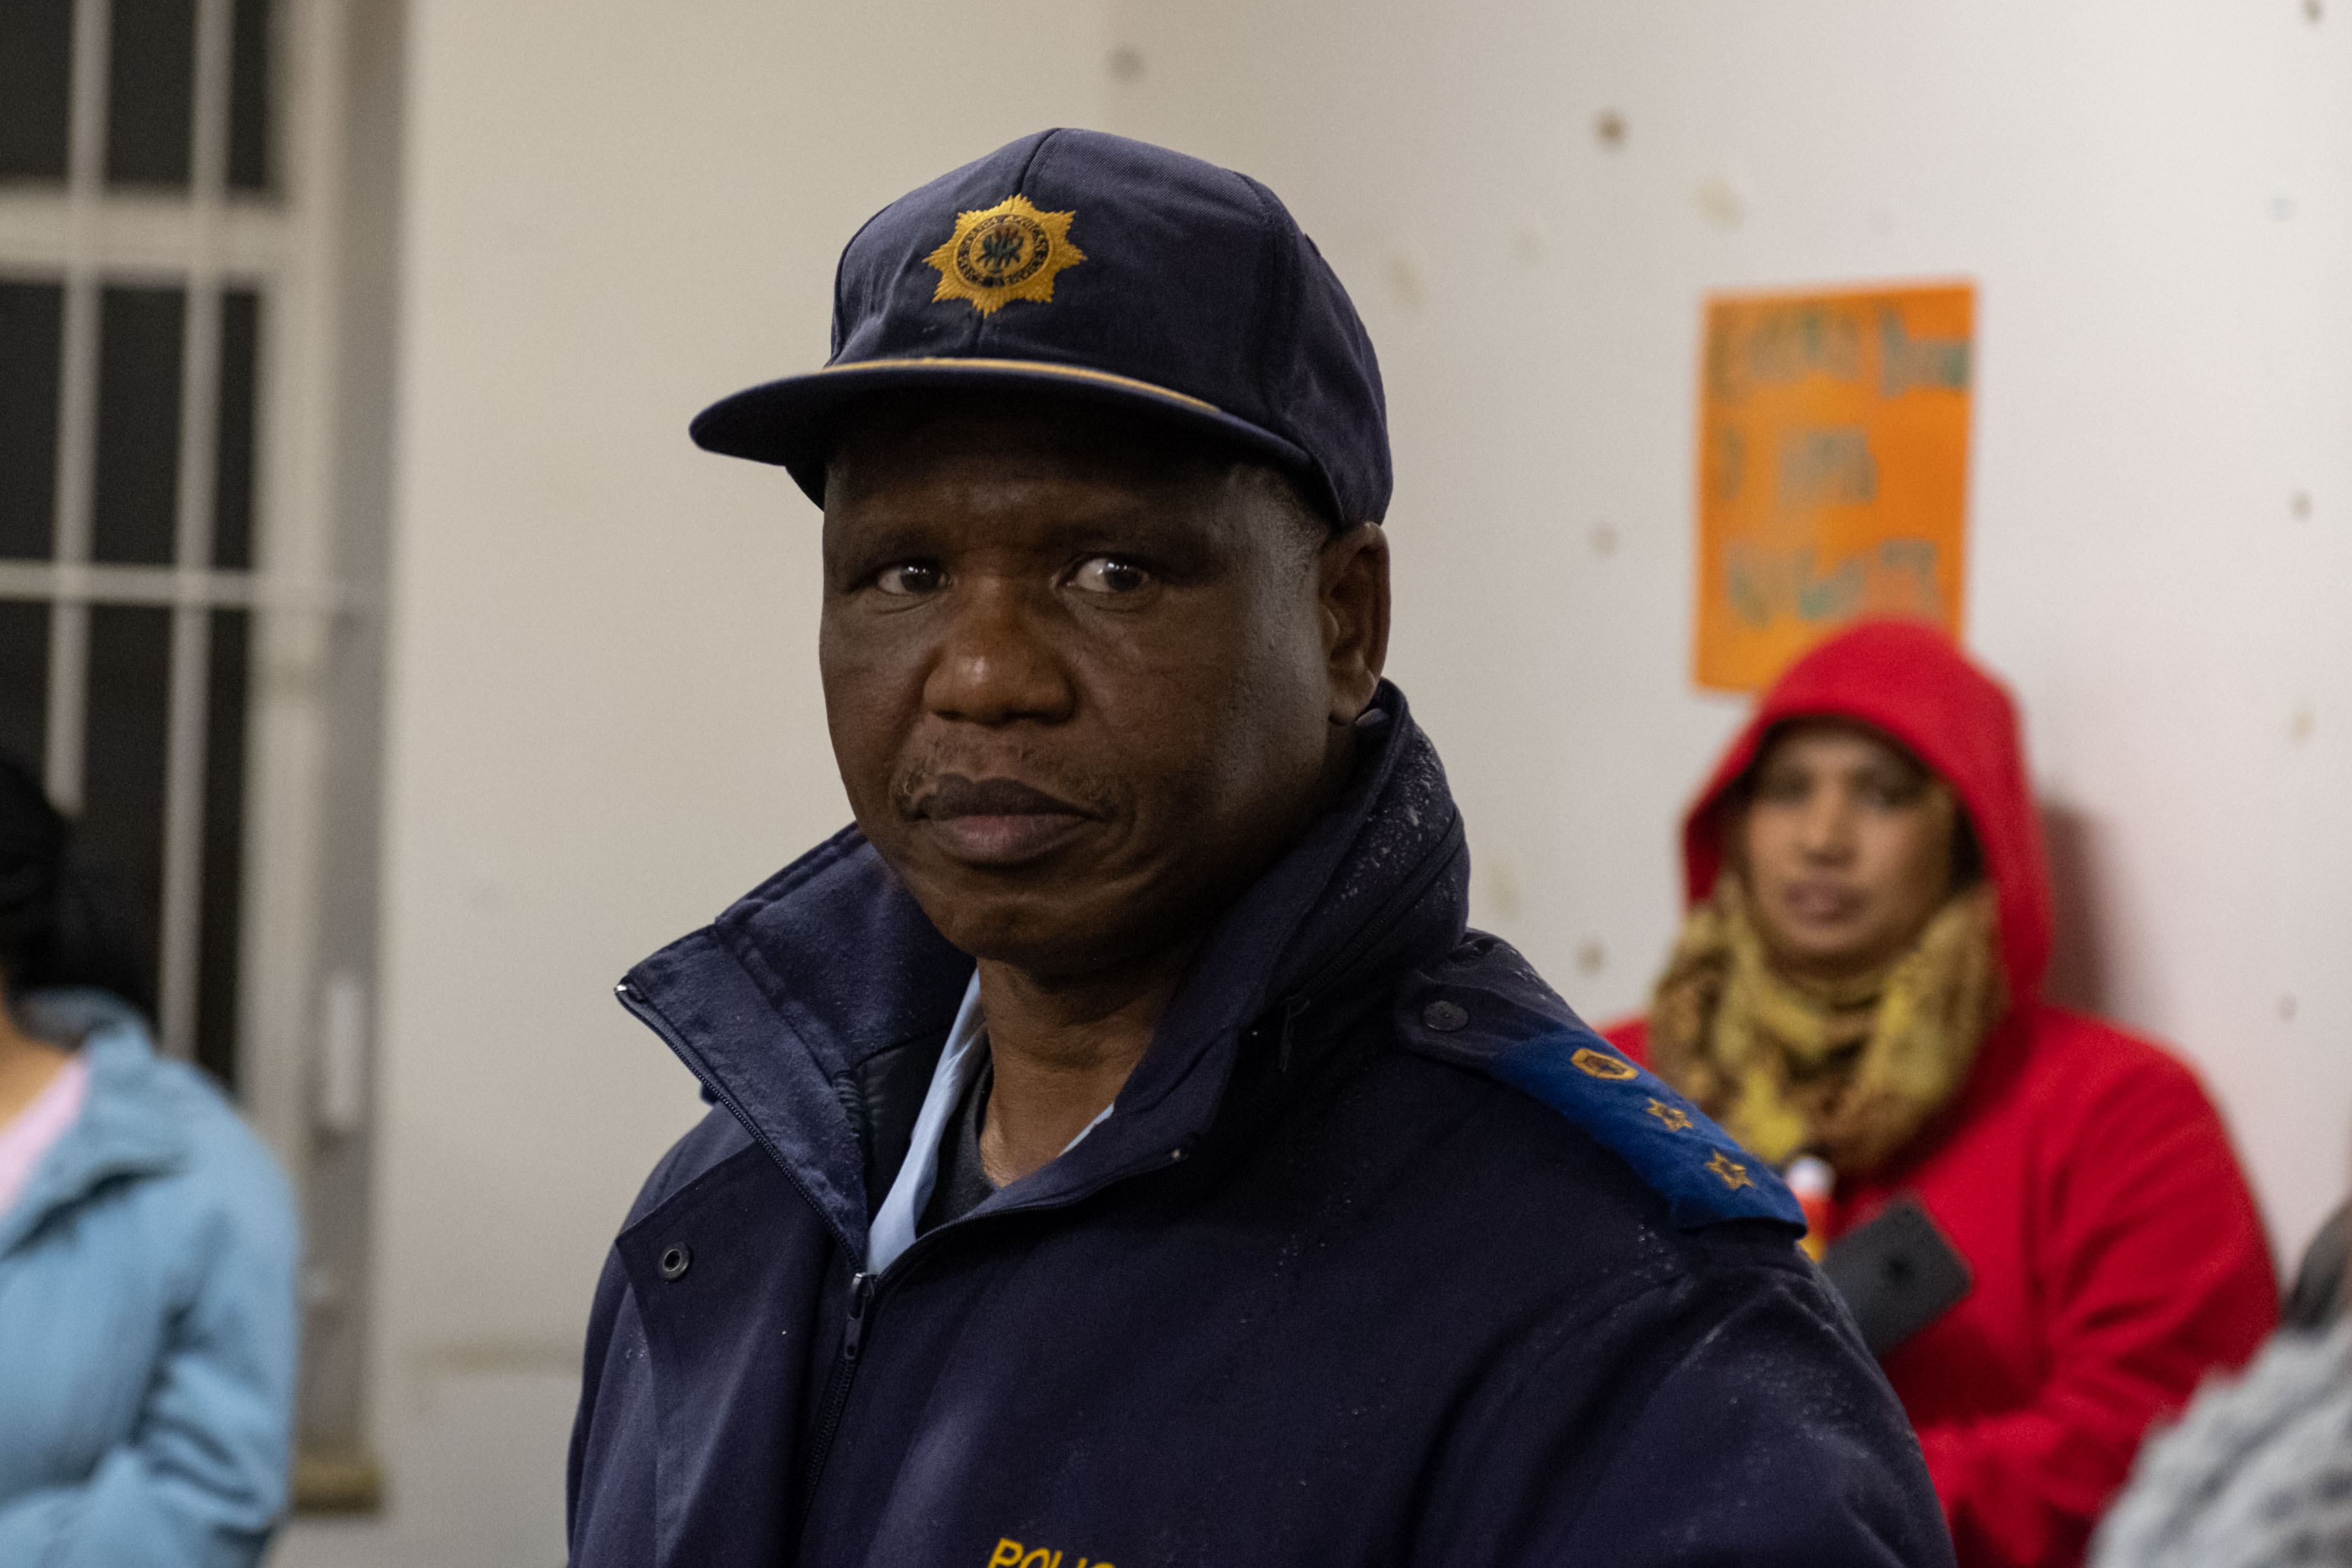 30 July 2019: Colonel Ntezo, the station commander at the Woodstock Police Station, came out to listen to the complaints of the residents but did not offer any direct answers to their questions about the reasons for the raid.